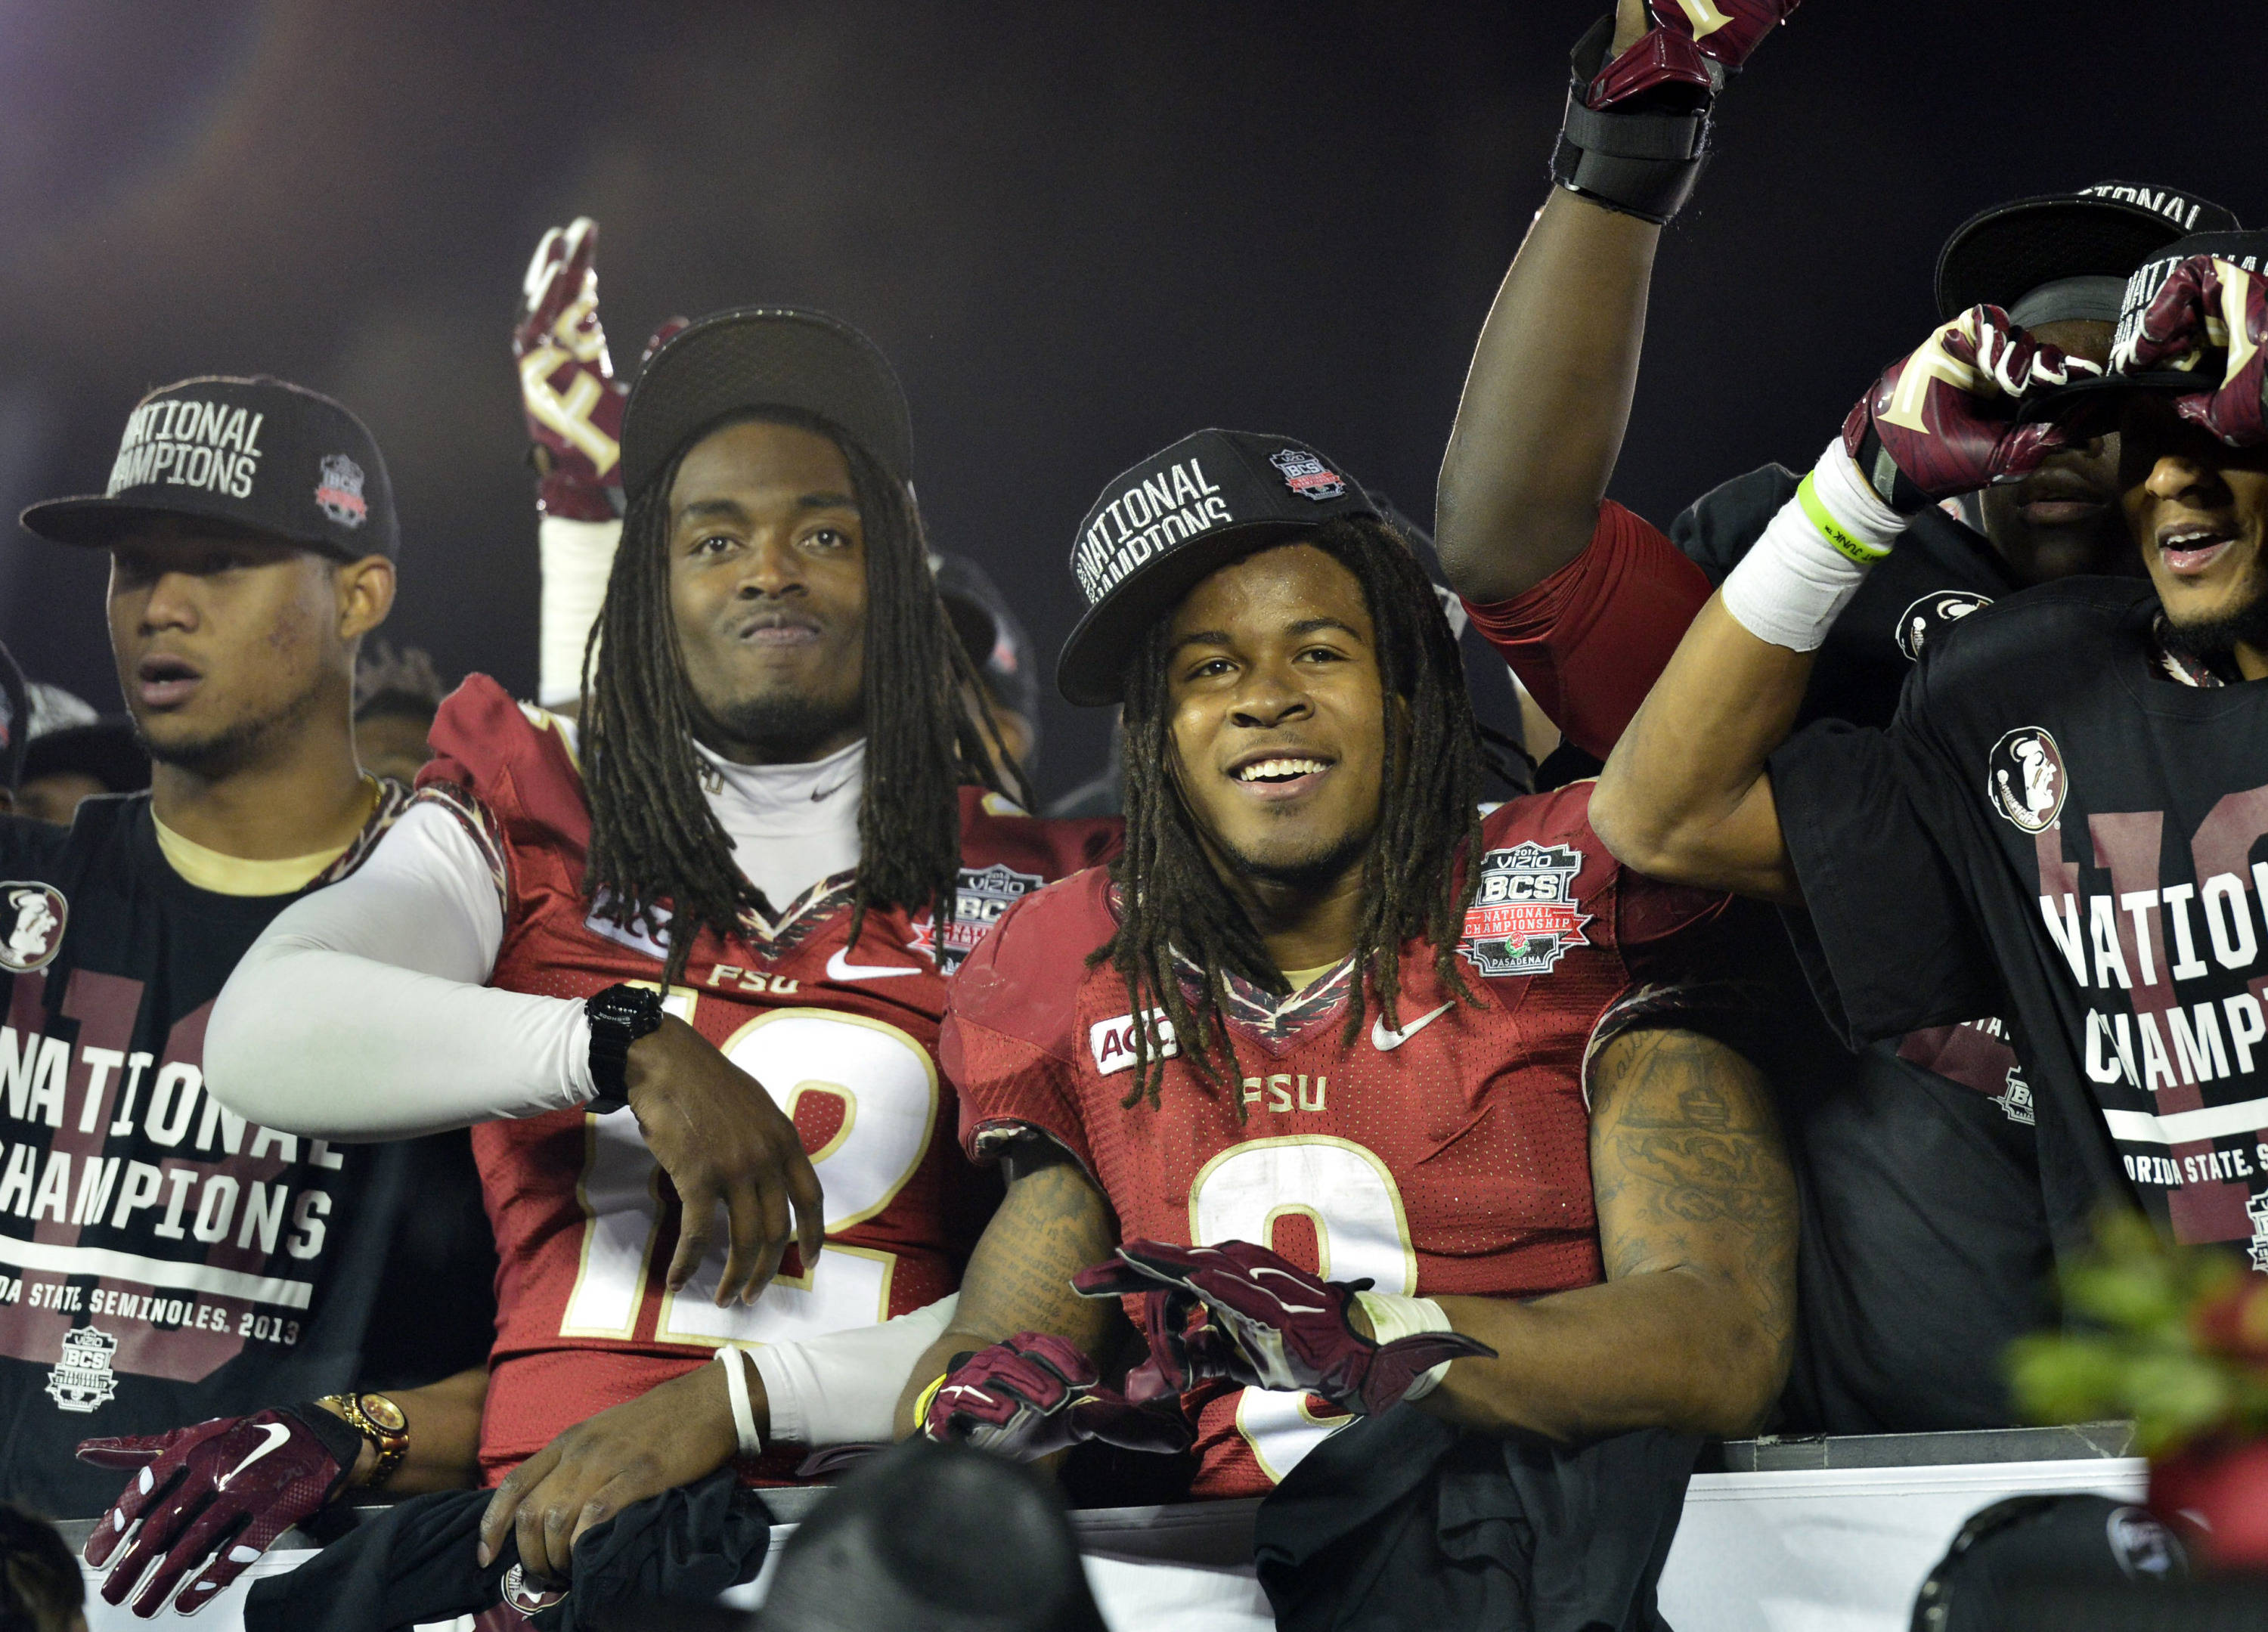 Jan 6, 2014; Pasadena, CA, USA; Florida State Seminoles quarterback Hunter Dewitt (12) and running back Devonta Freeman (8) celebrate after winning the 2014 BCS National Championship game against Auburn Tigers 34-31 at the Rose Bowl.  Mandatory Credit: Richard Mackson-USA TODAY Sports